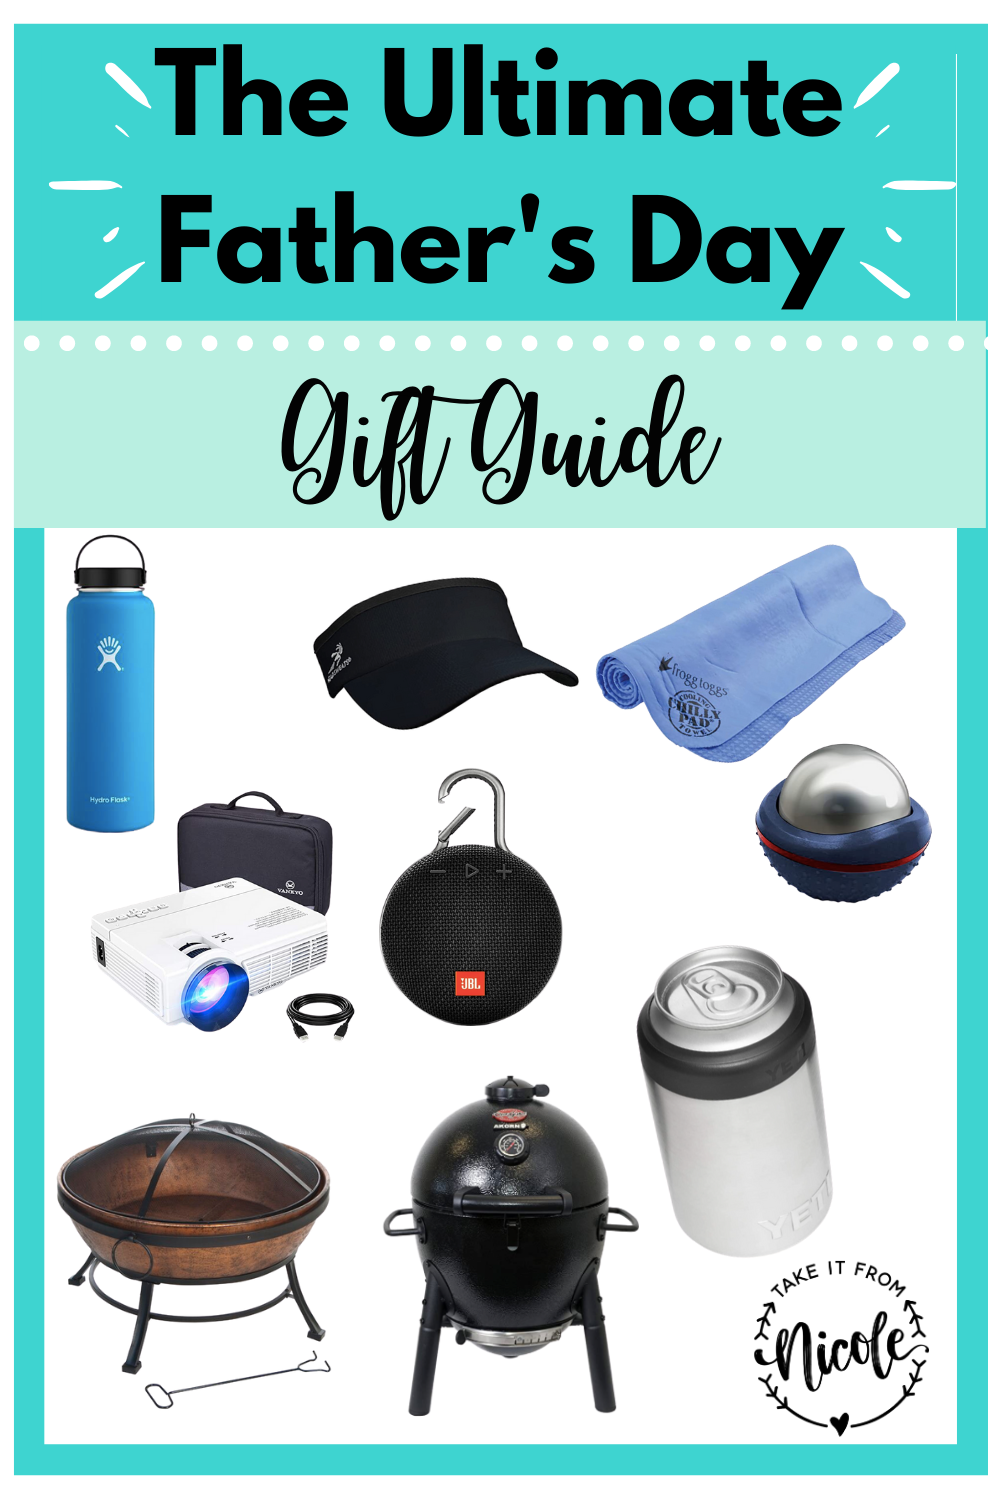 My dad and my husband are both notoriously difficult to shop for and I have the hardest time finding gifts for them so that's why I put together this guide! I'm hoping there's something for everyone here that will be a crowd pleaser. Whether you are buying for an outdoorsman, a grill master, or a techie this list should have you covered.